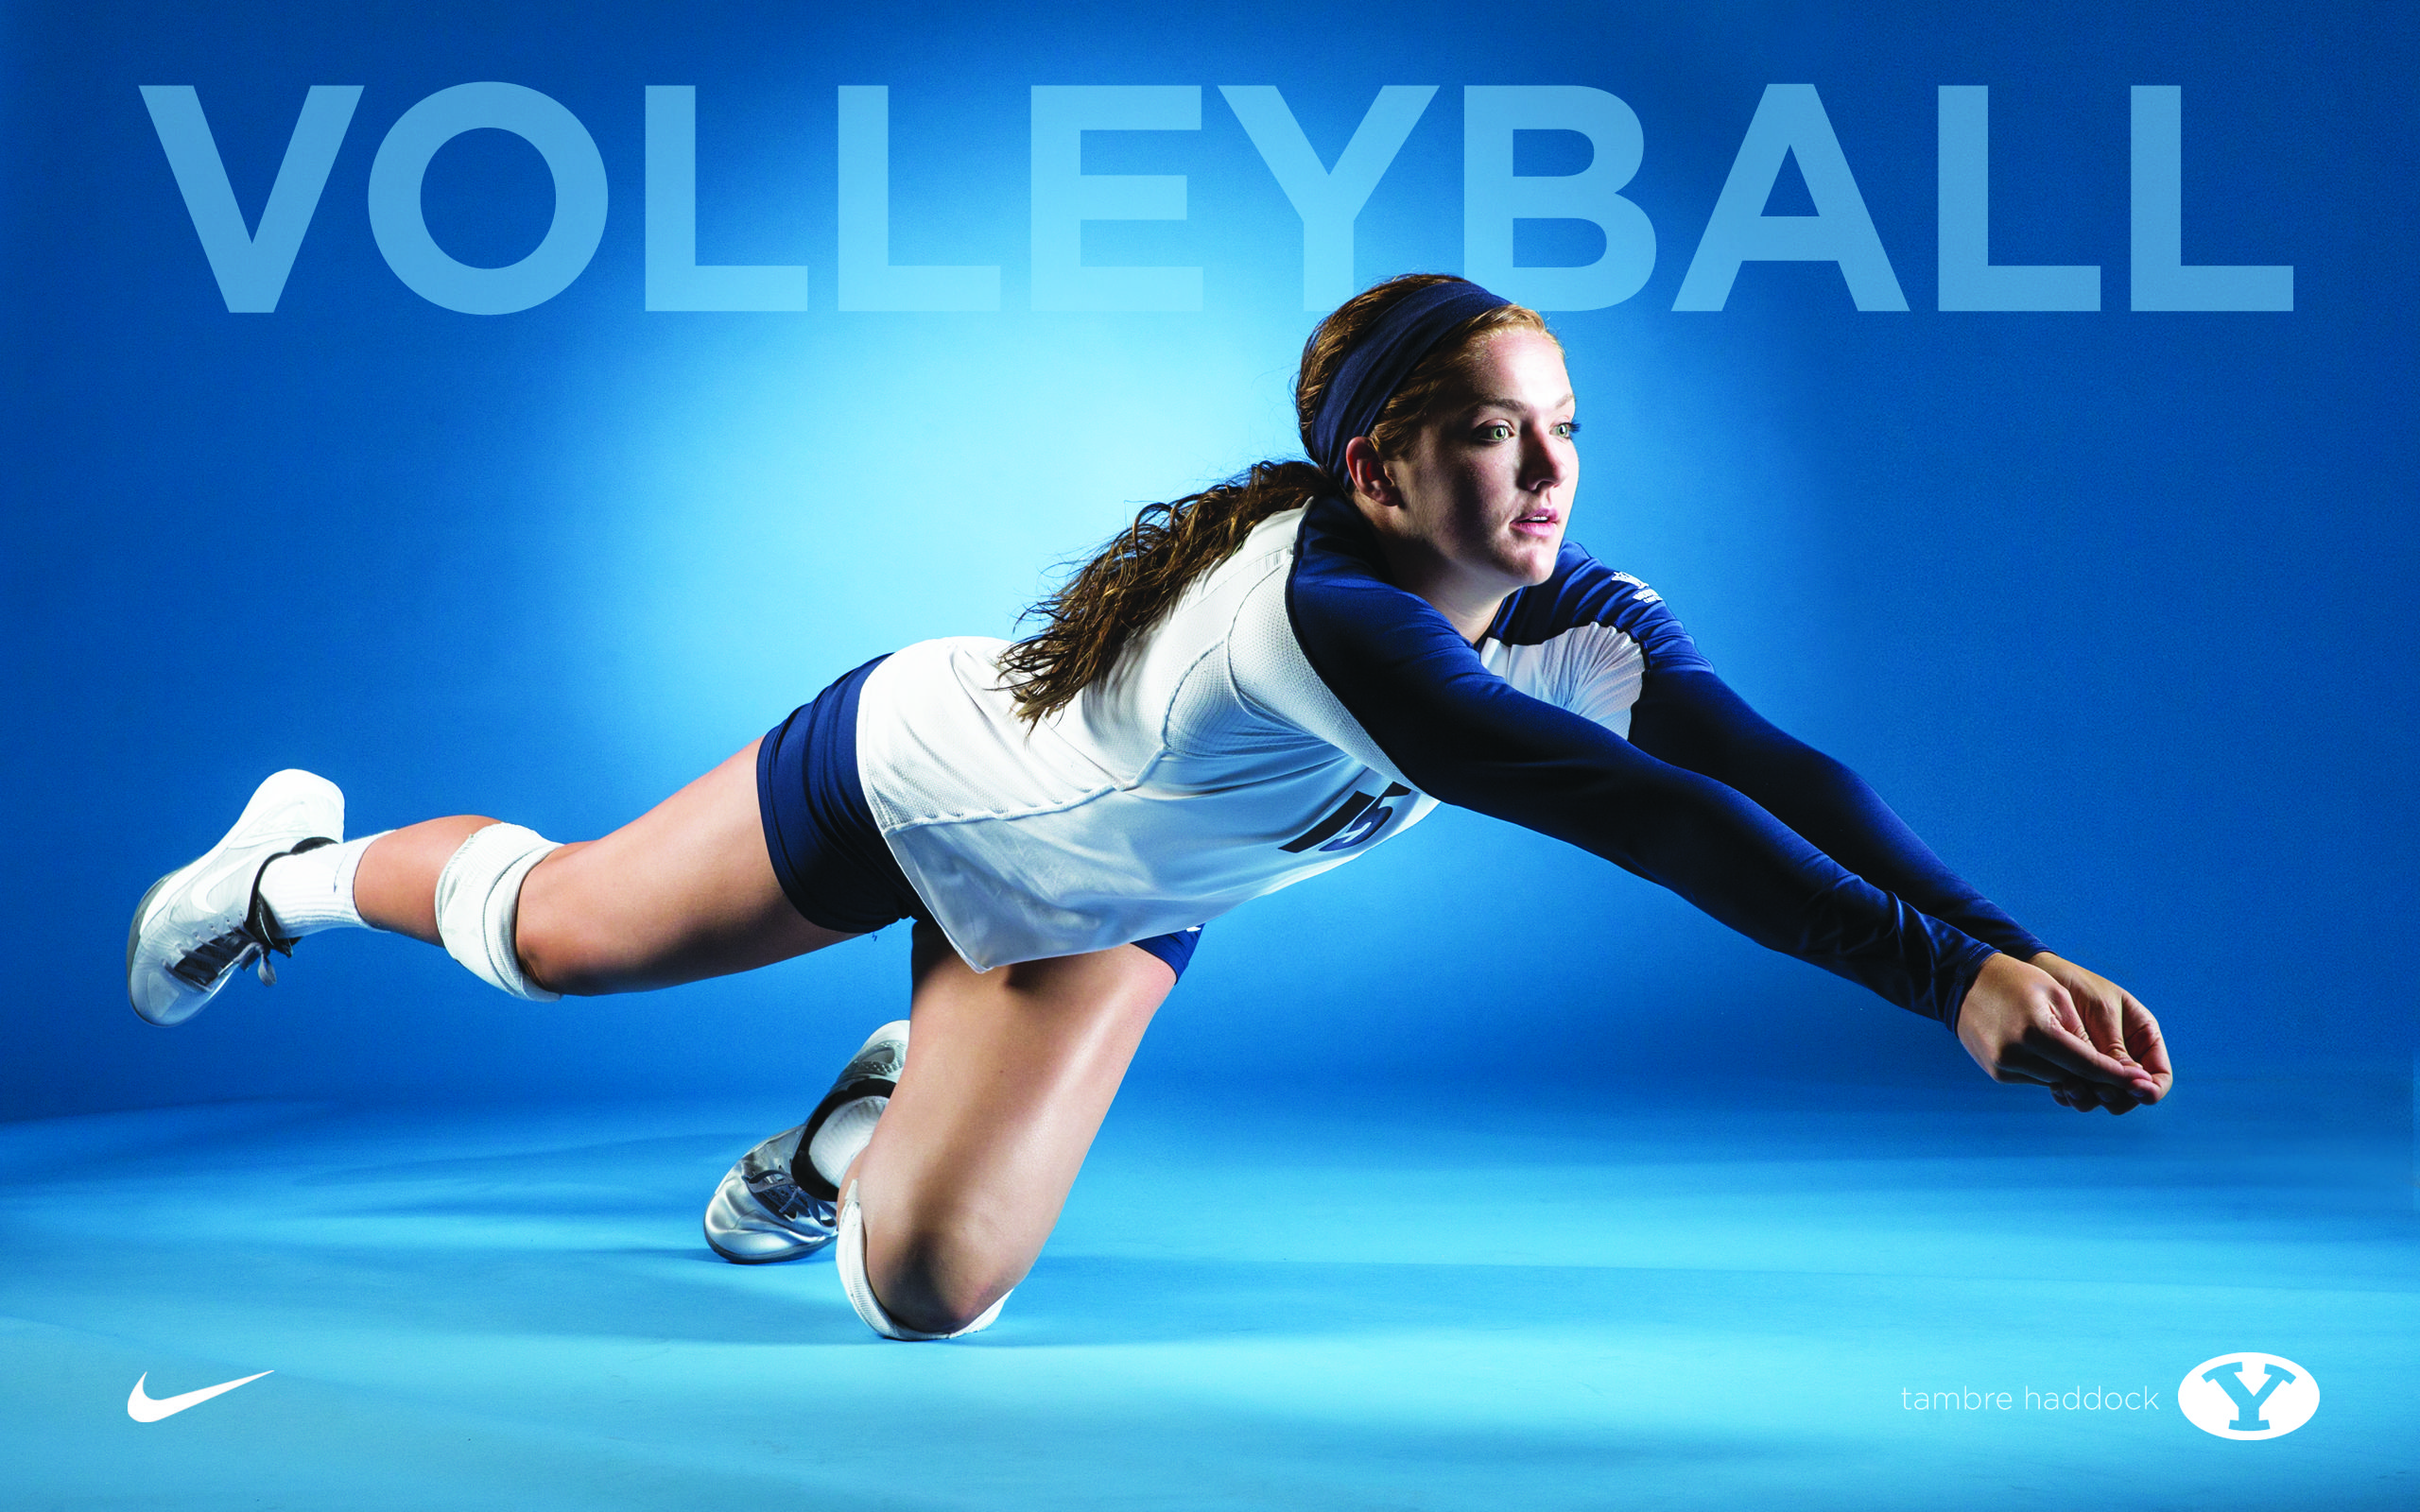 Latest Women S Volleyball Wallpaper The Official Site Of Byu Athletics Volleyball Wallpaper Volleyball Pictures Women Volleyball